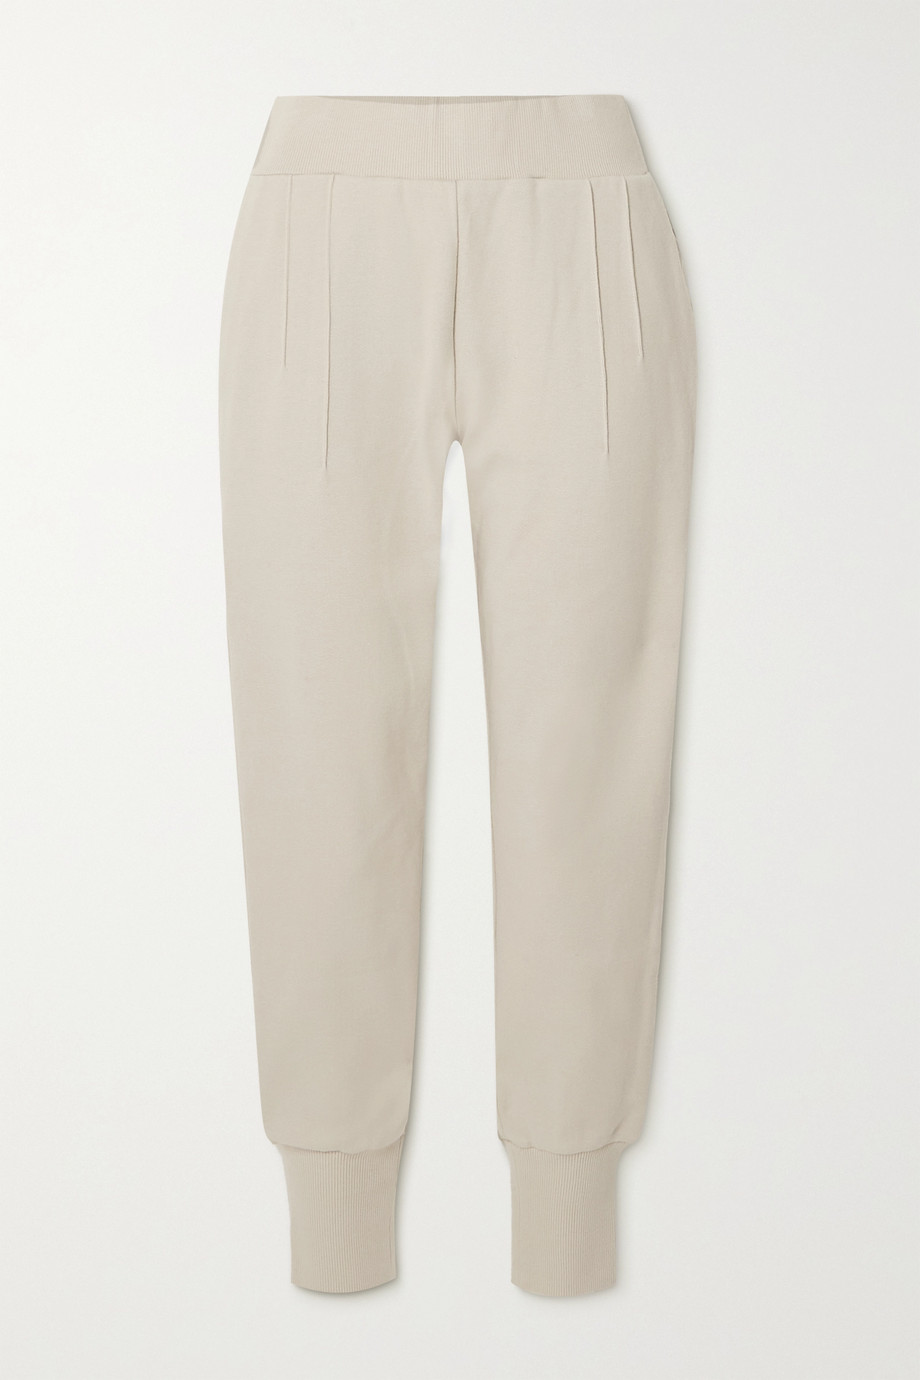 VARLEY Amberley stretch-cotton piqué track pants